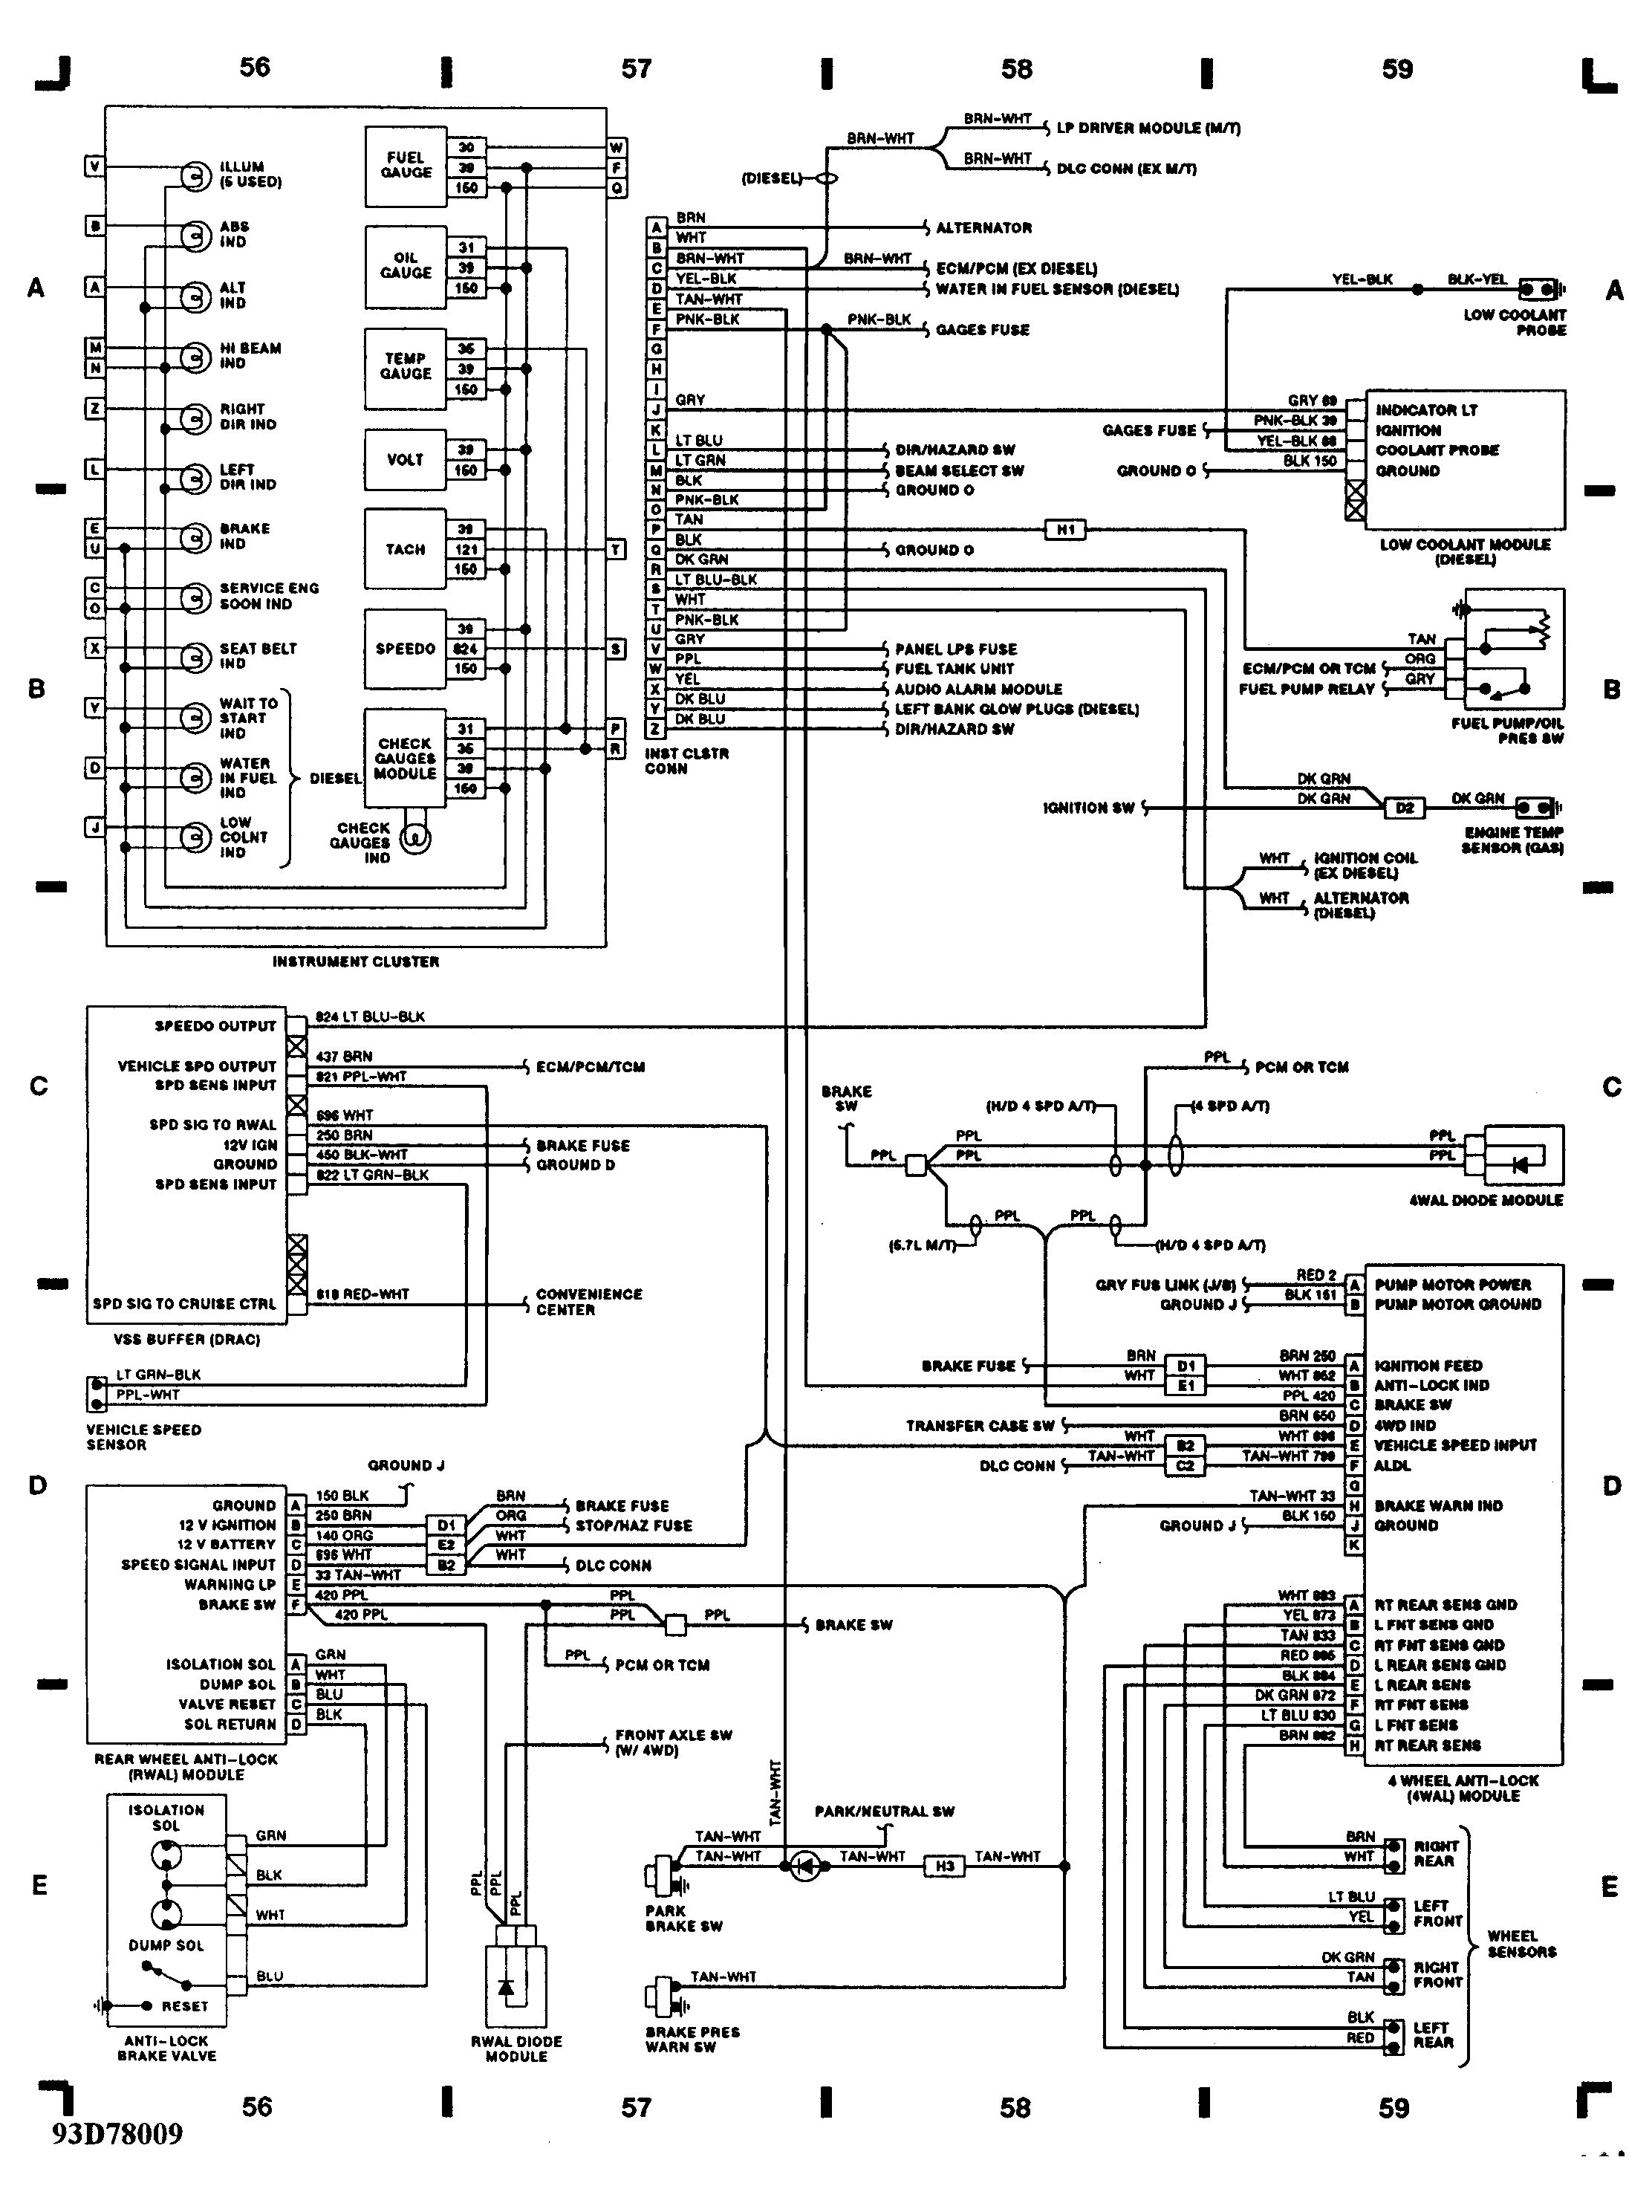 buick 3100 v6 engine diagram 2003 wiring library rh 14 boptions1 de GM 3100  V6 Engine Diagram 3100 SFI V6 Engine Diagram